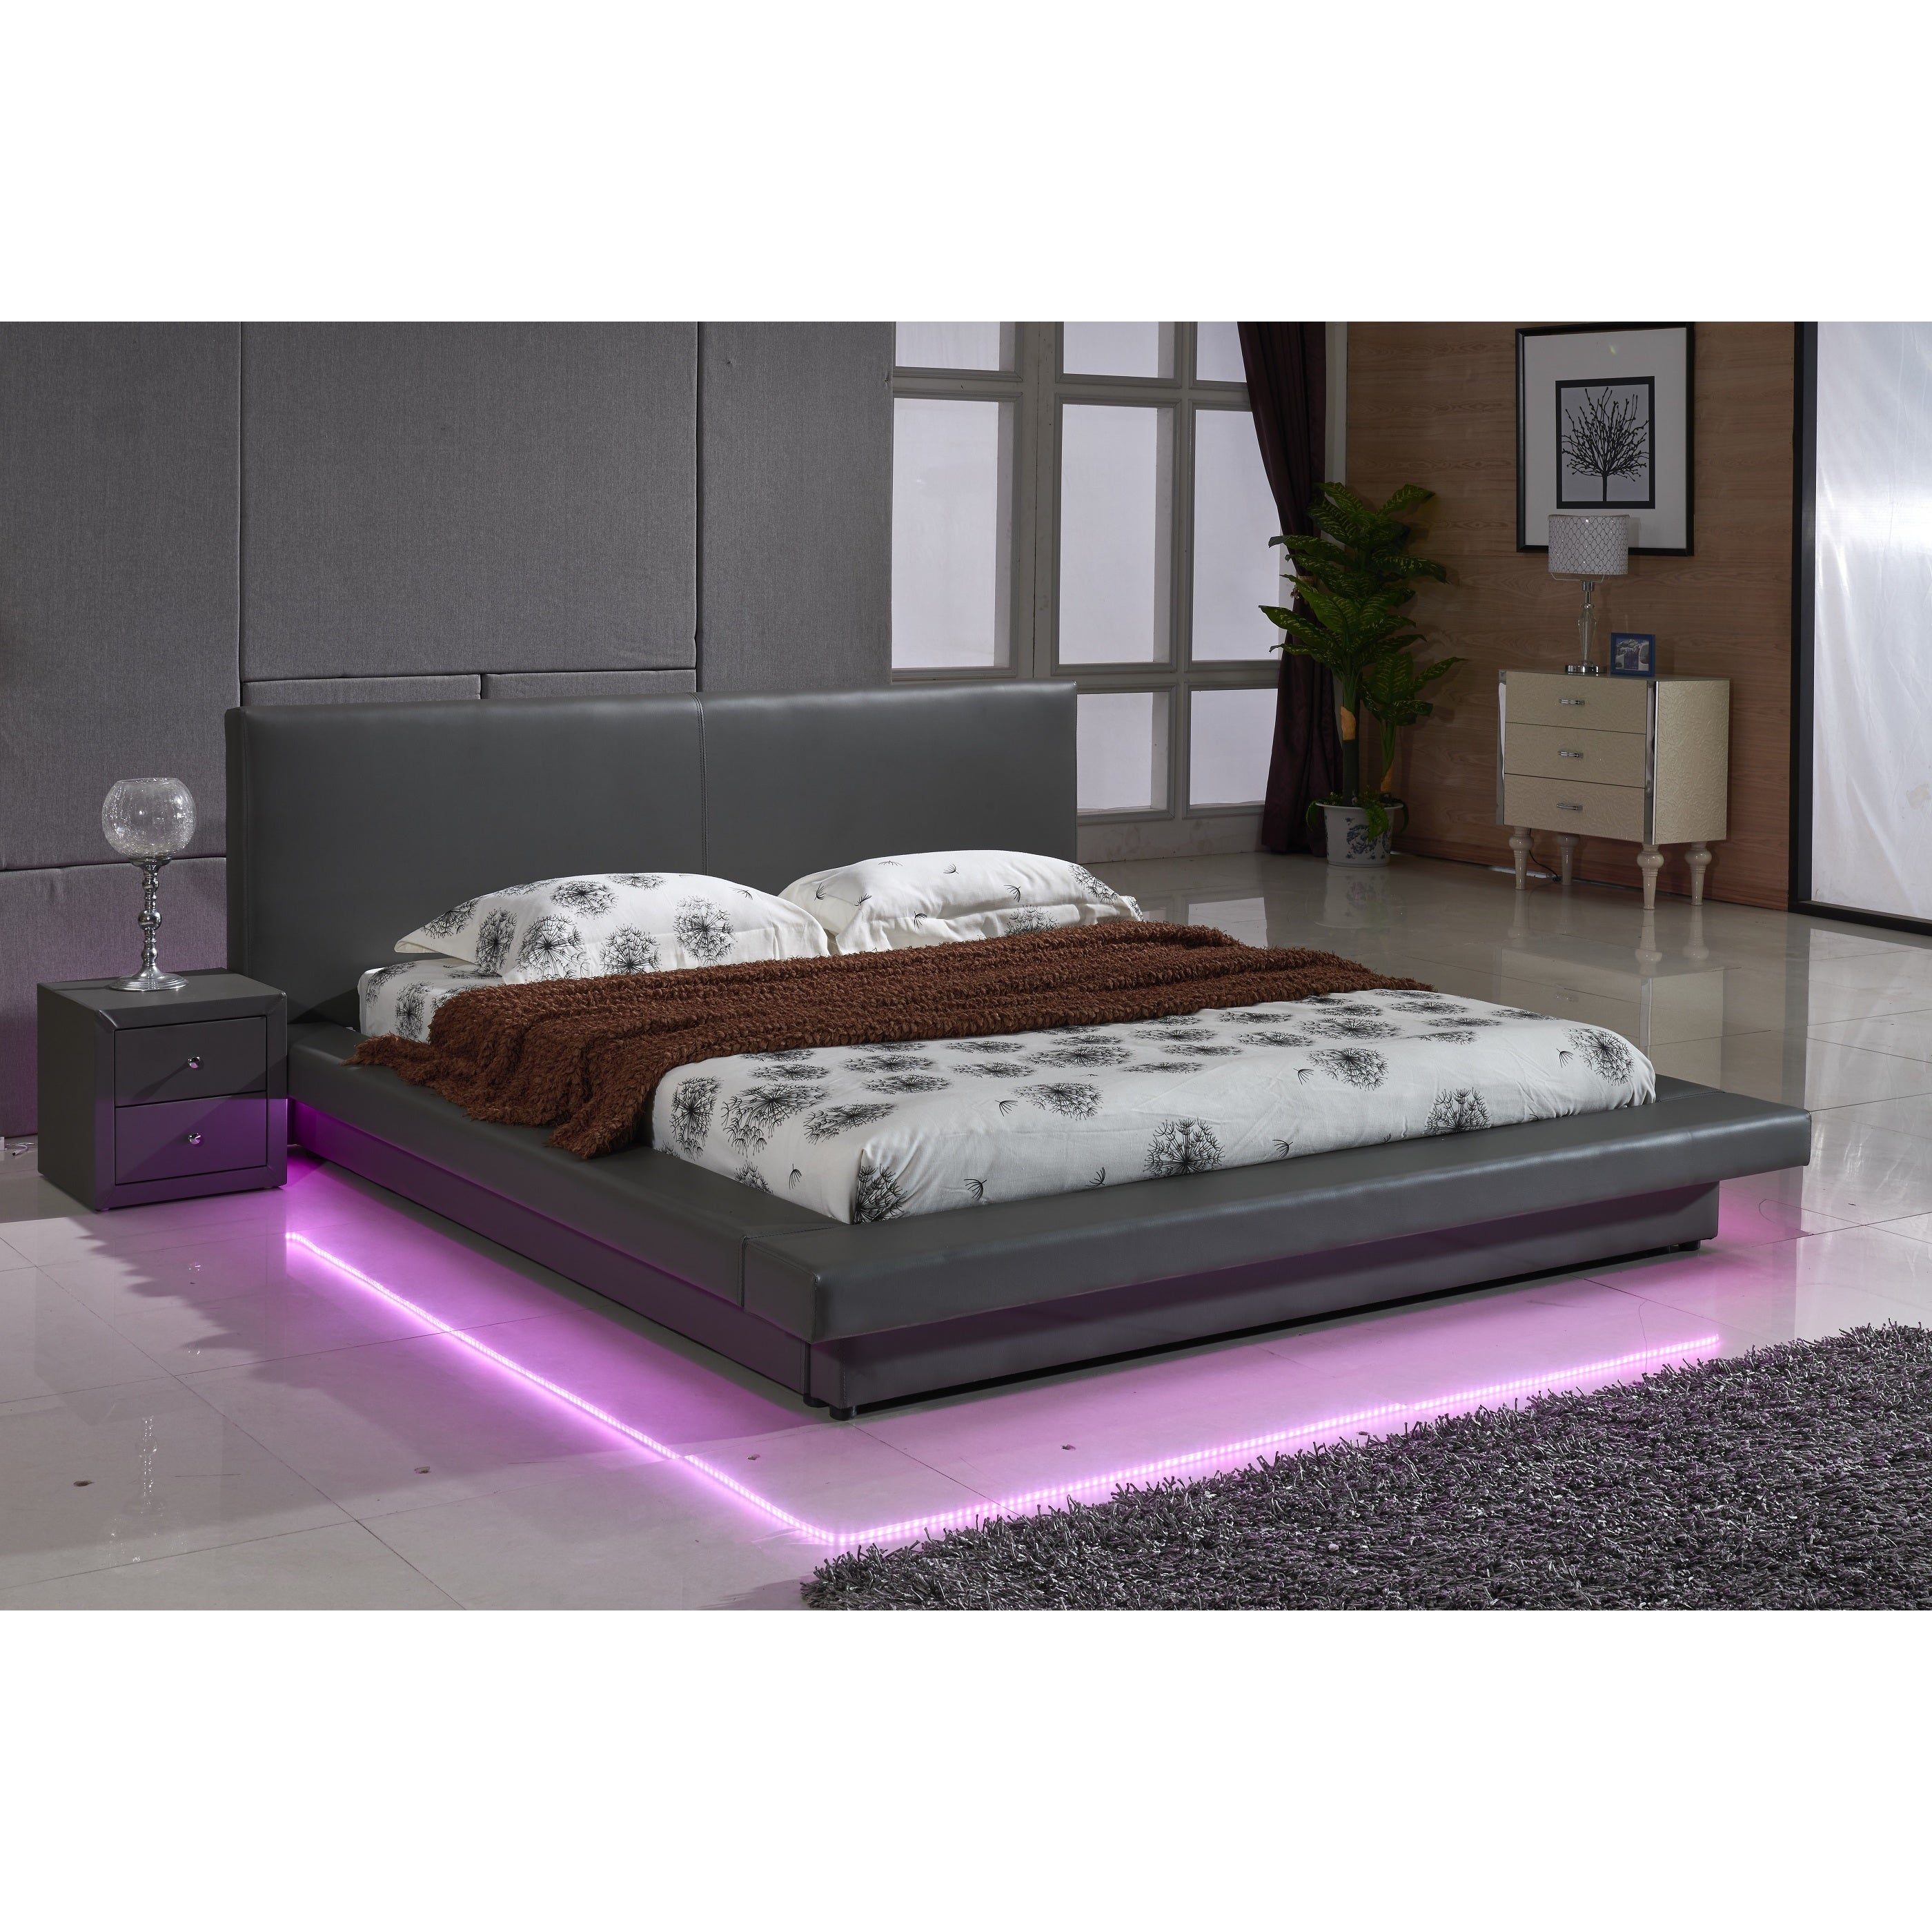 Picture of: Grey Leather With Led Decoration Strip Light Contemporary Platform Bed Overstock 10993034 Eastern King